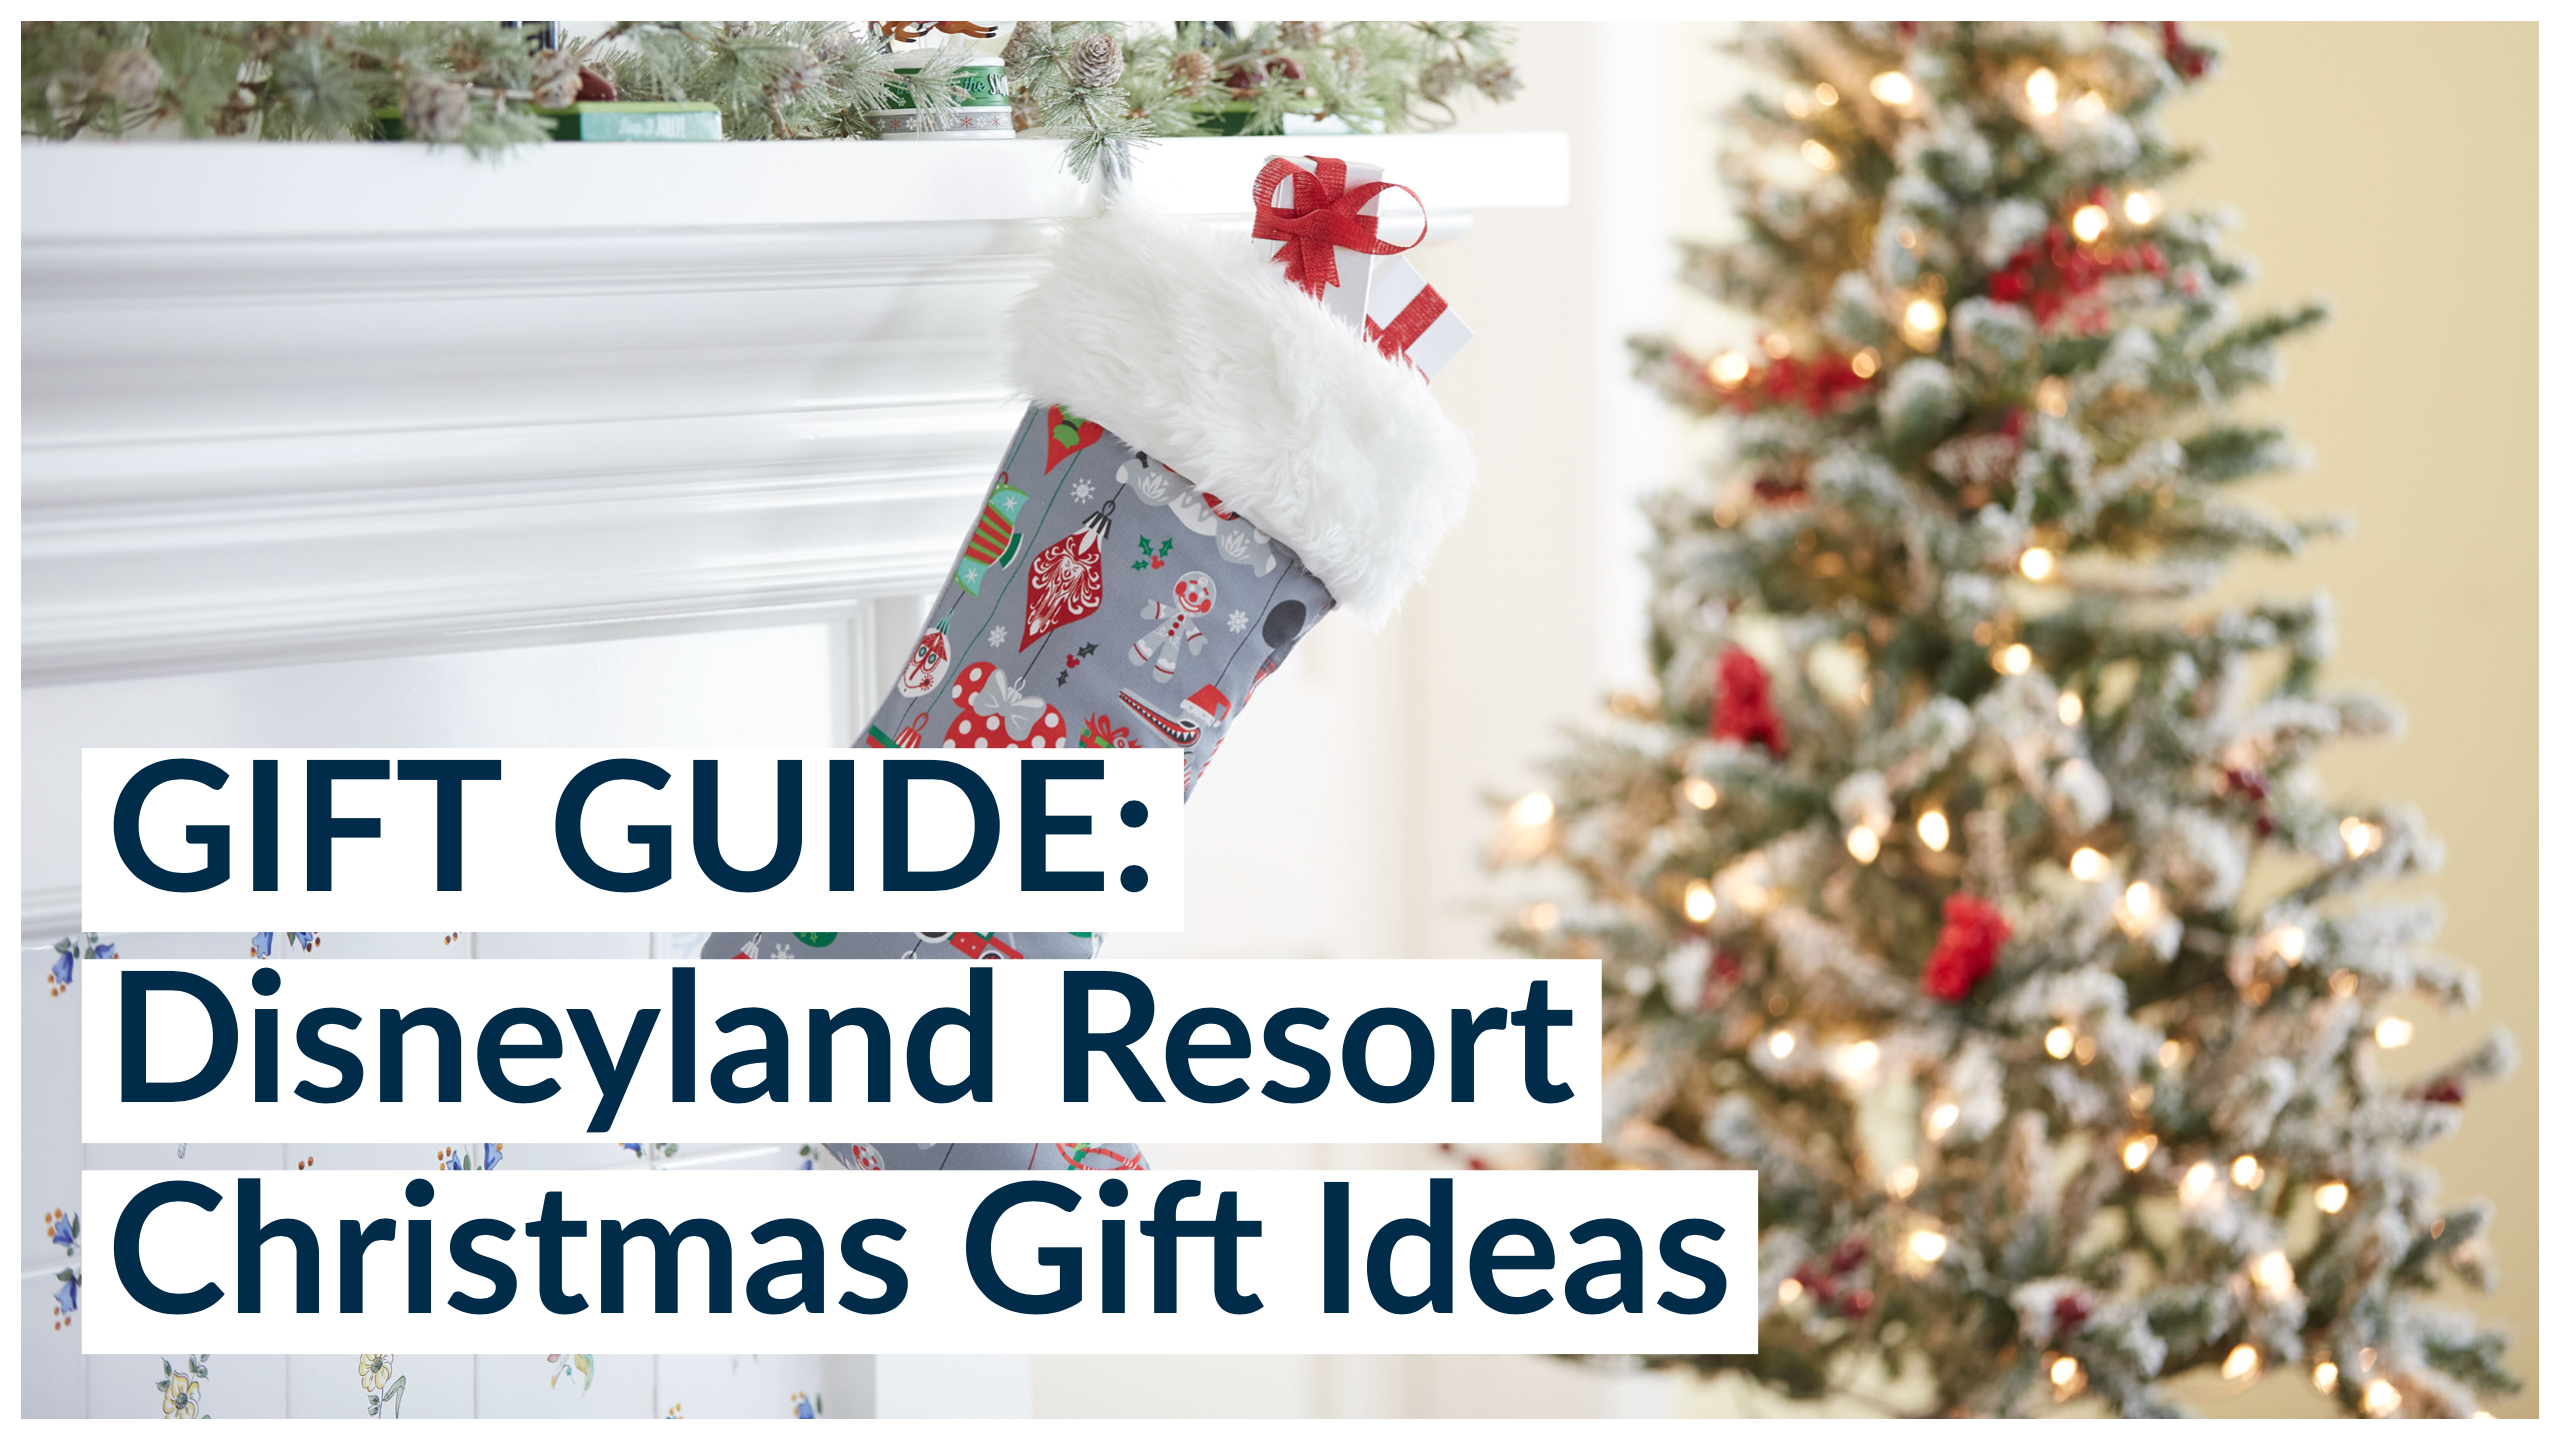 Gift Guide: Disneyland Resort Christmas Gift Ideas for Friends, Family, and Loved Ones at the Happiest Place on Earth!